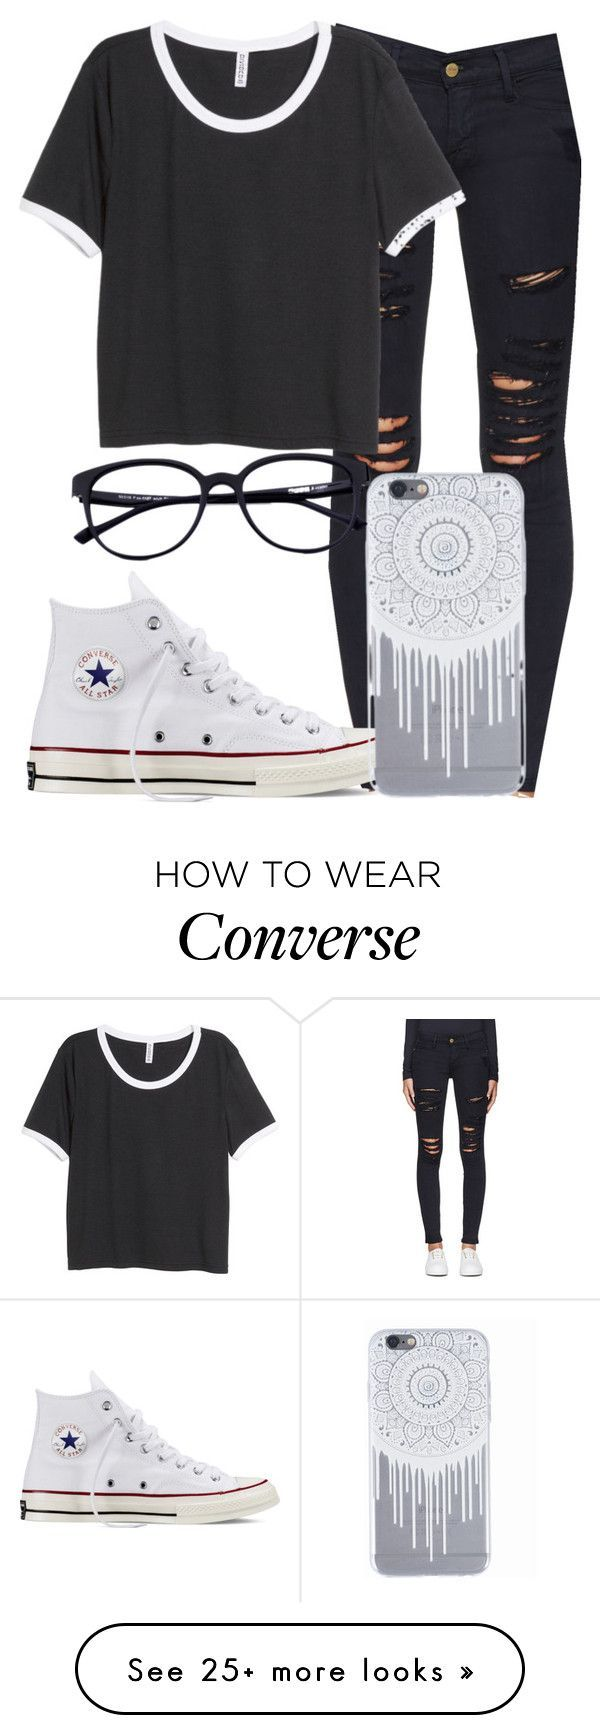 """§§ I'm So High §§"" by mallorimae on Polyvore featuring Frame Denim, H&M and Converse"